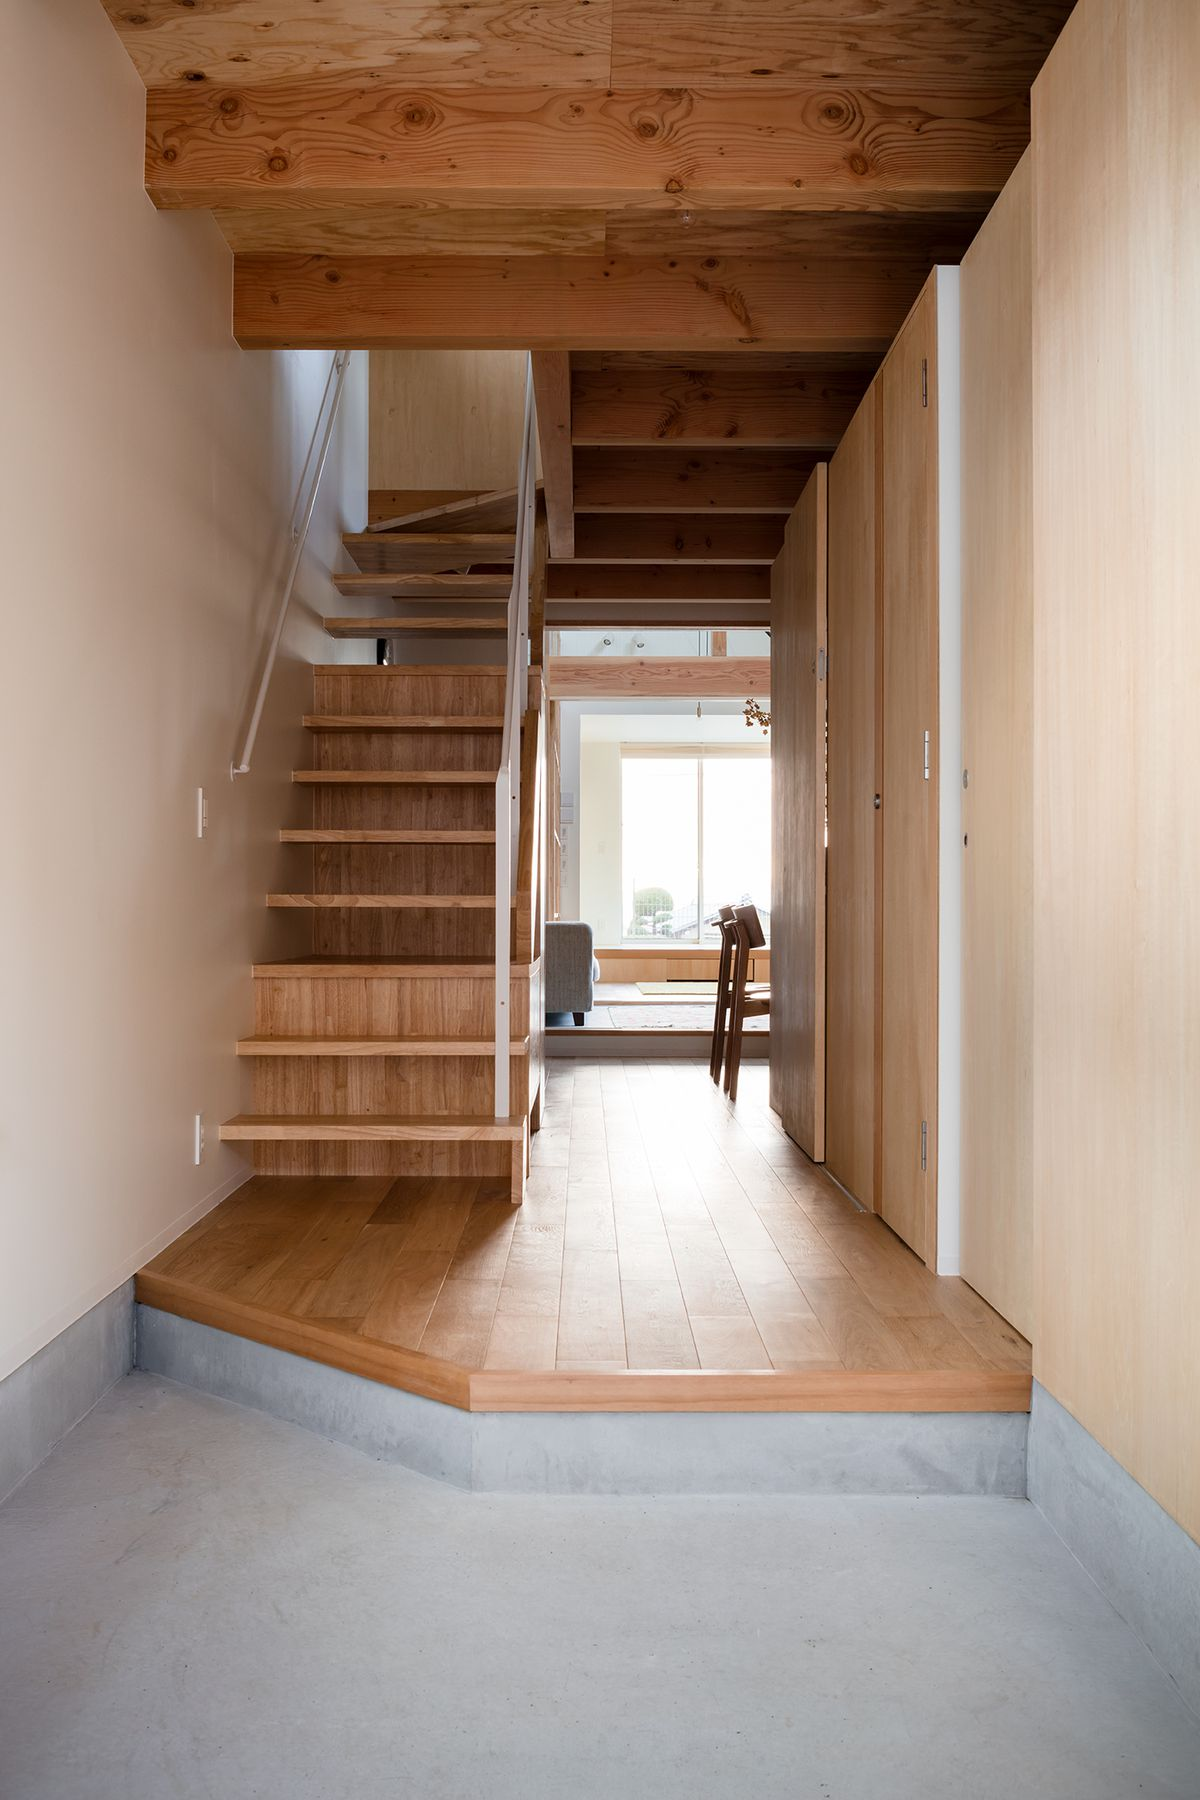 Wooden stairs leading to second story.